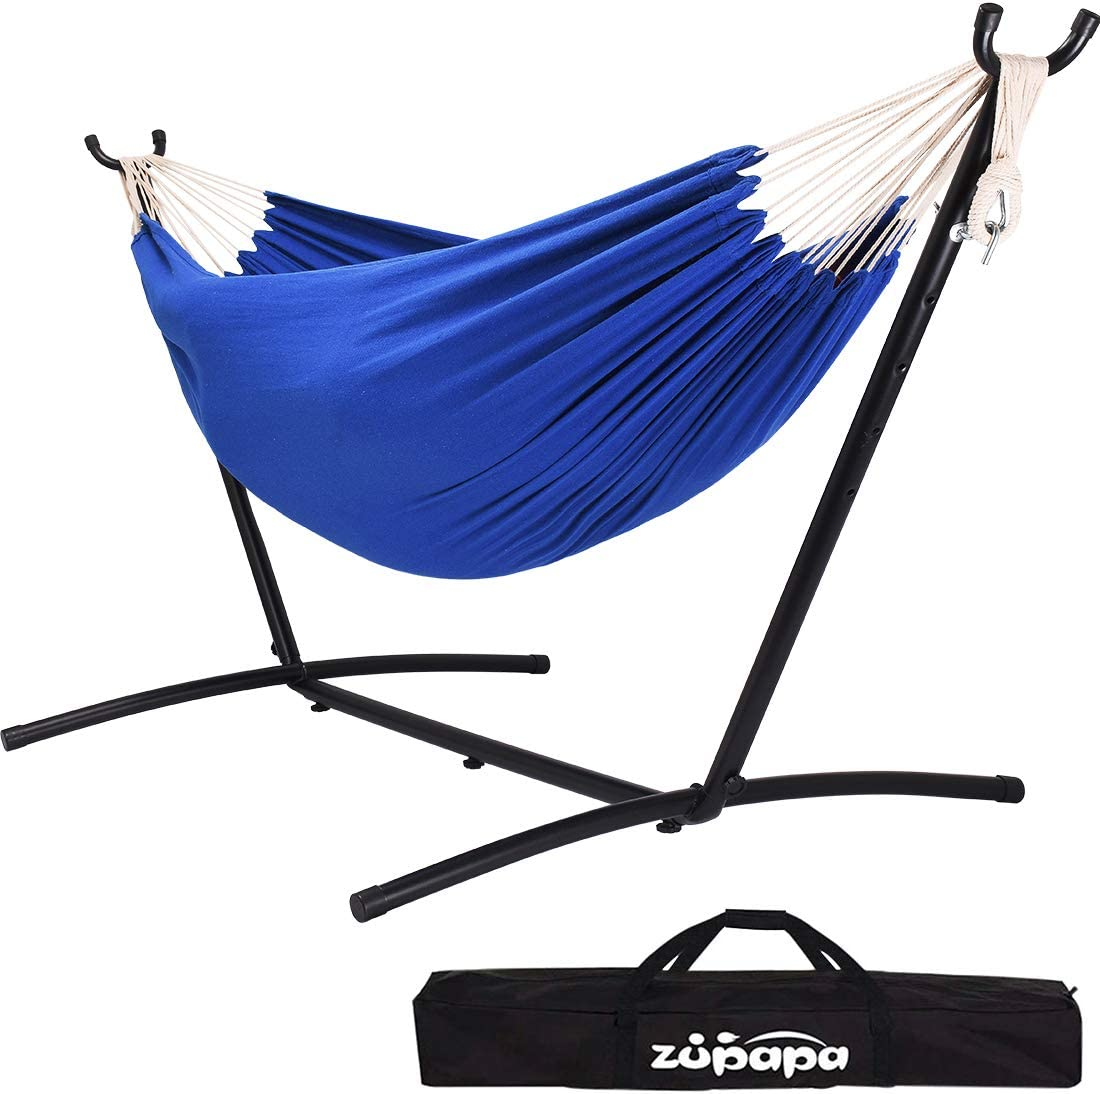 Zupapa Double Hammock with Stand and Carrying Case, 10Feet Hammock Frame, 2 People Hammock Combo for Backyard Garden Patio Indoor Outdoor Blue